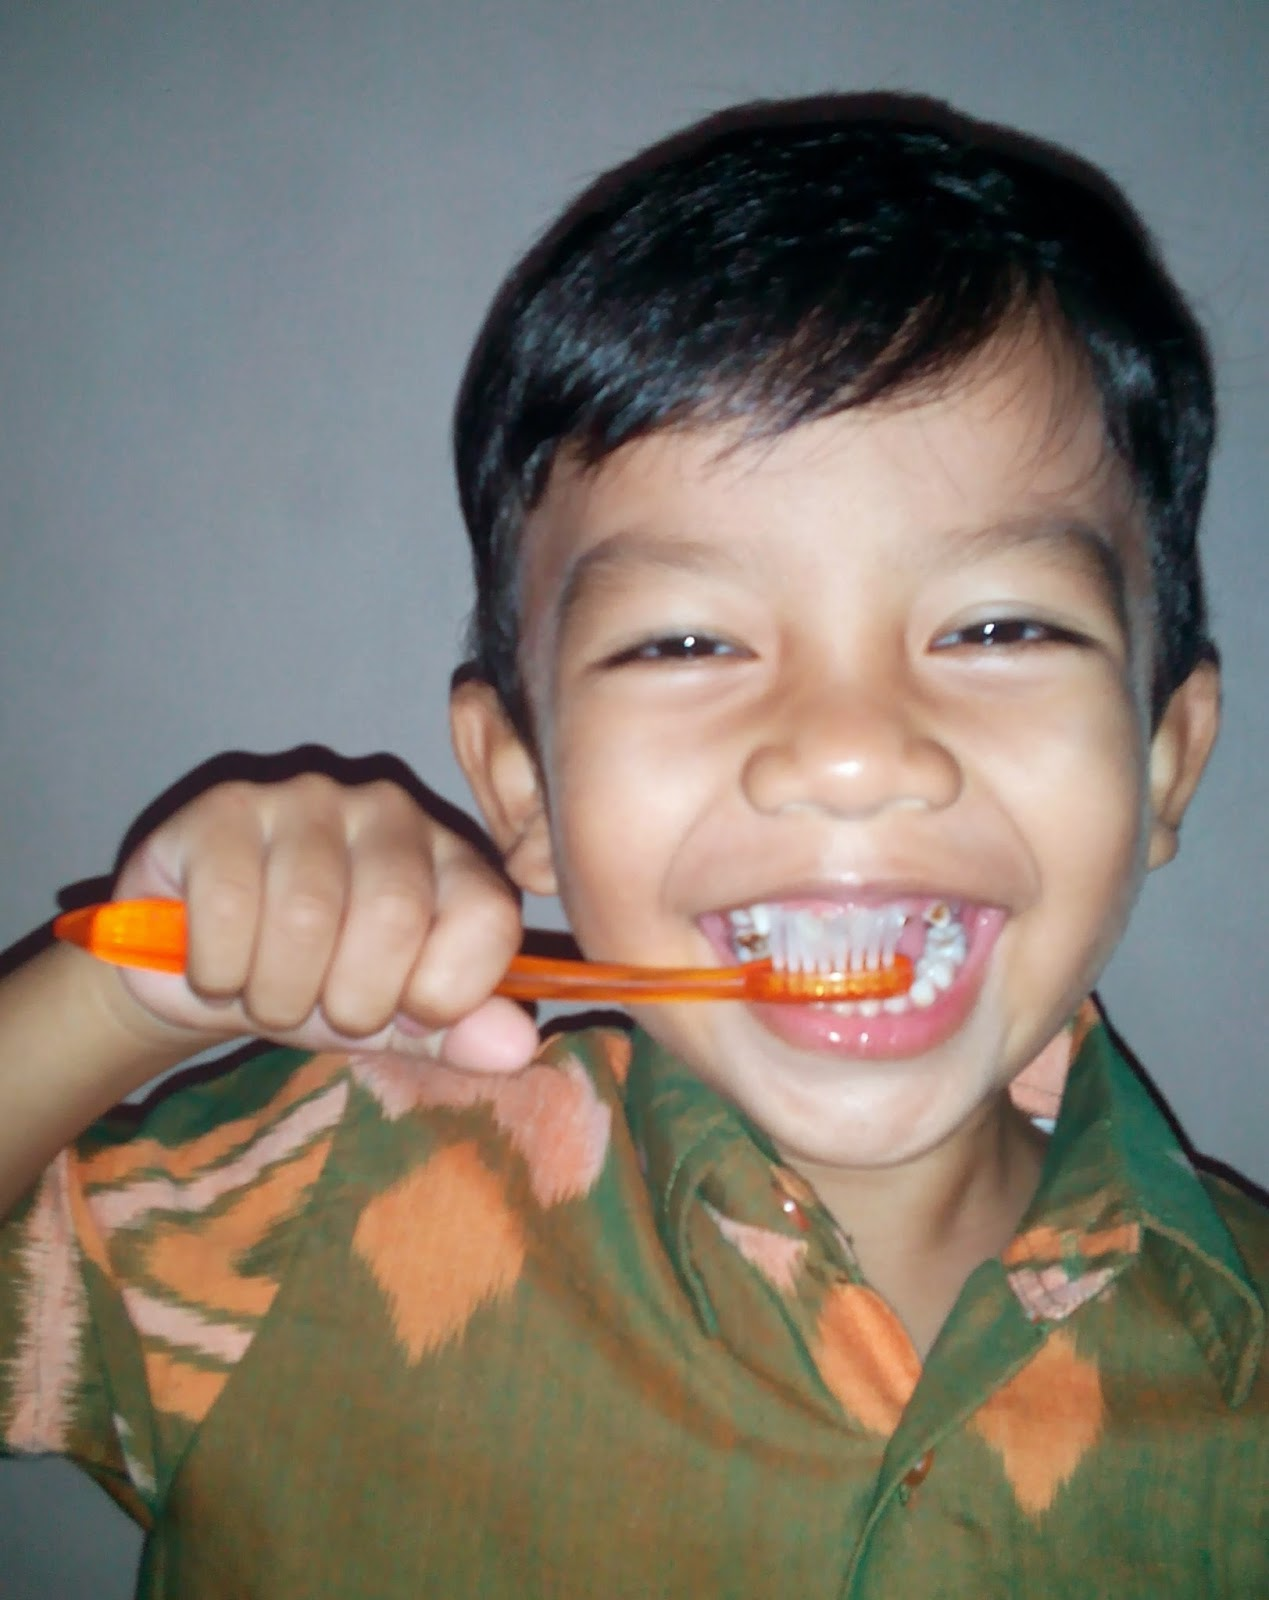 child teeth brush